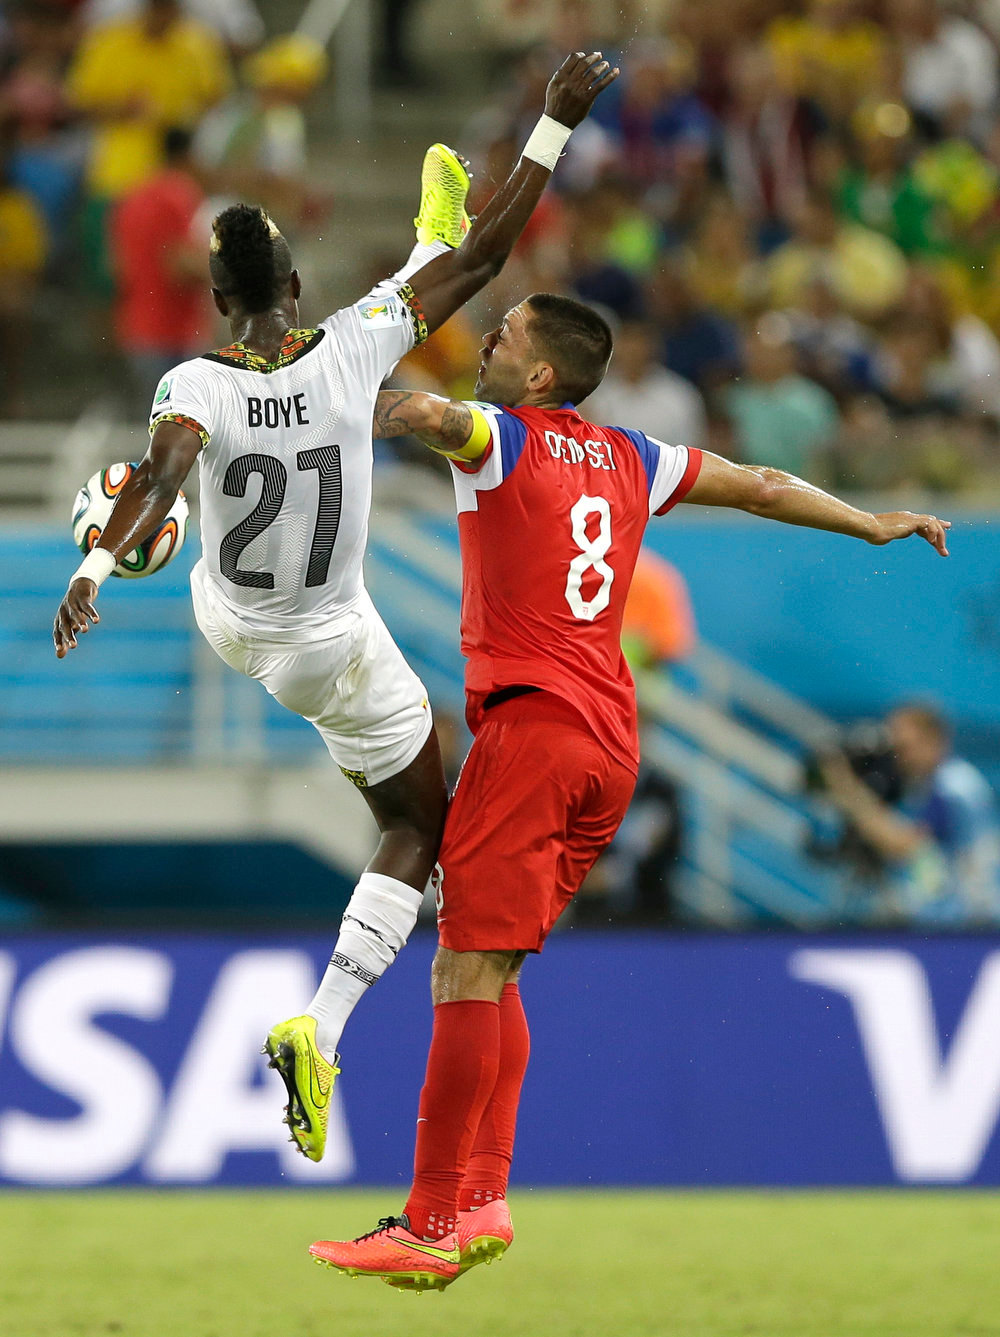 . Ghana\'s John Boye, left, challenges United States\' Clint Dempsey for the ball during the group G World Cup soccer match between Ghana and the United States at the Arena das Dunas in Natal, Brazil, Monday, June 16, 2014. (AP Photo/Ricardo Mazalan)